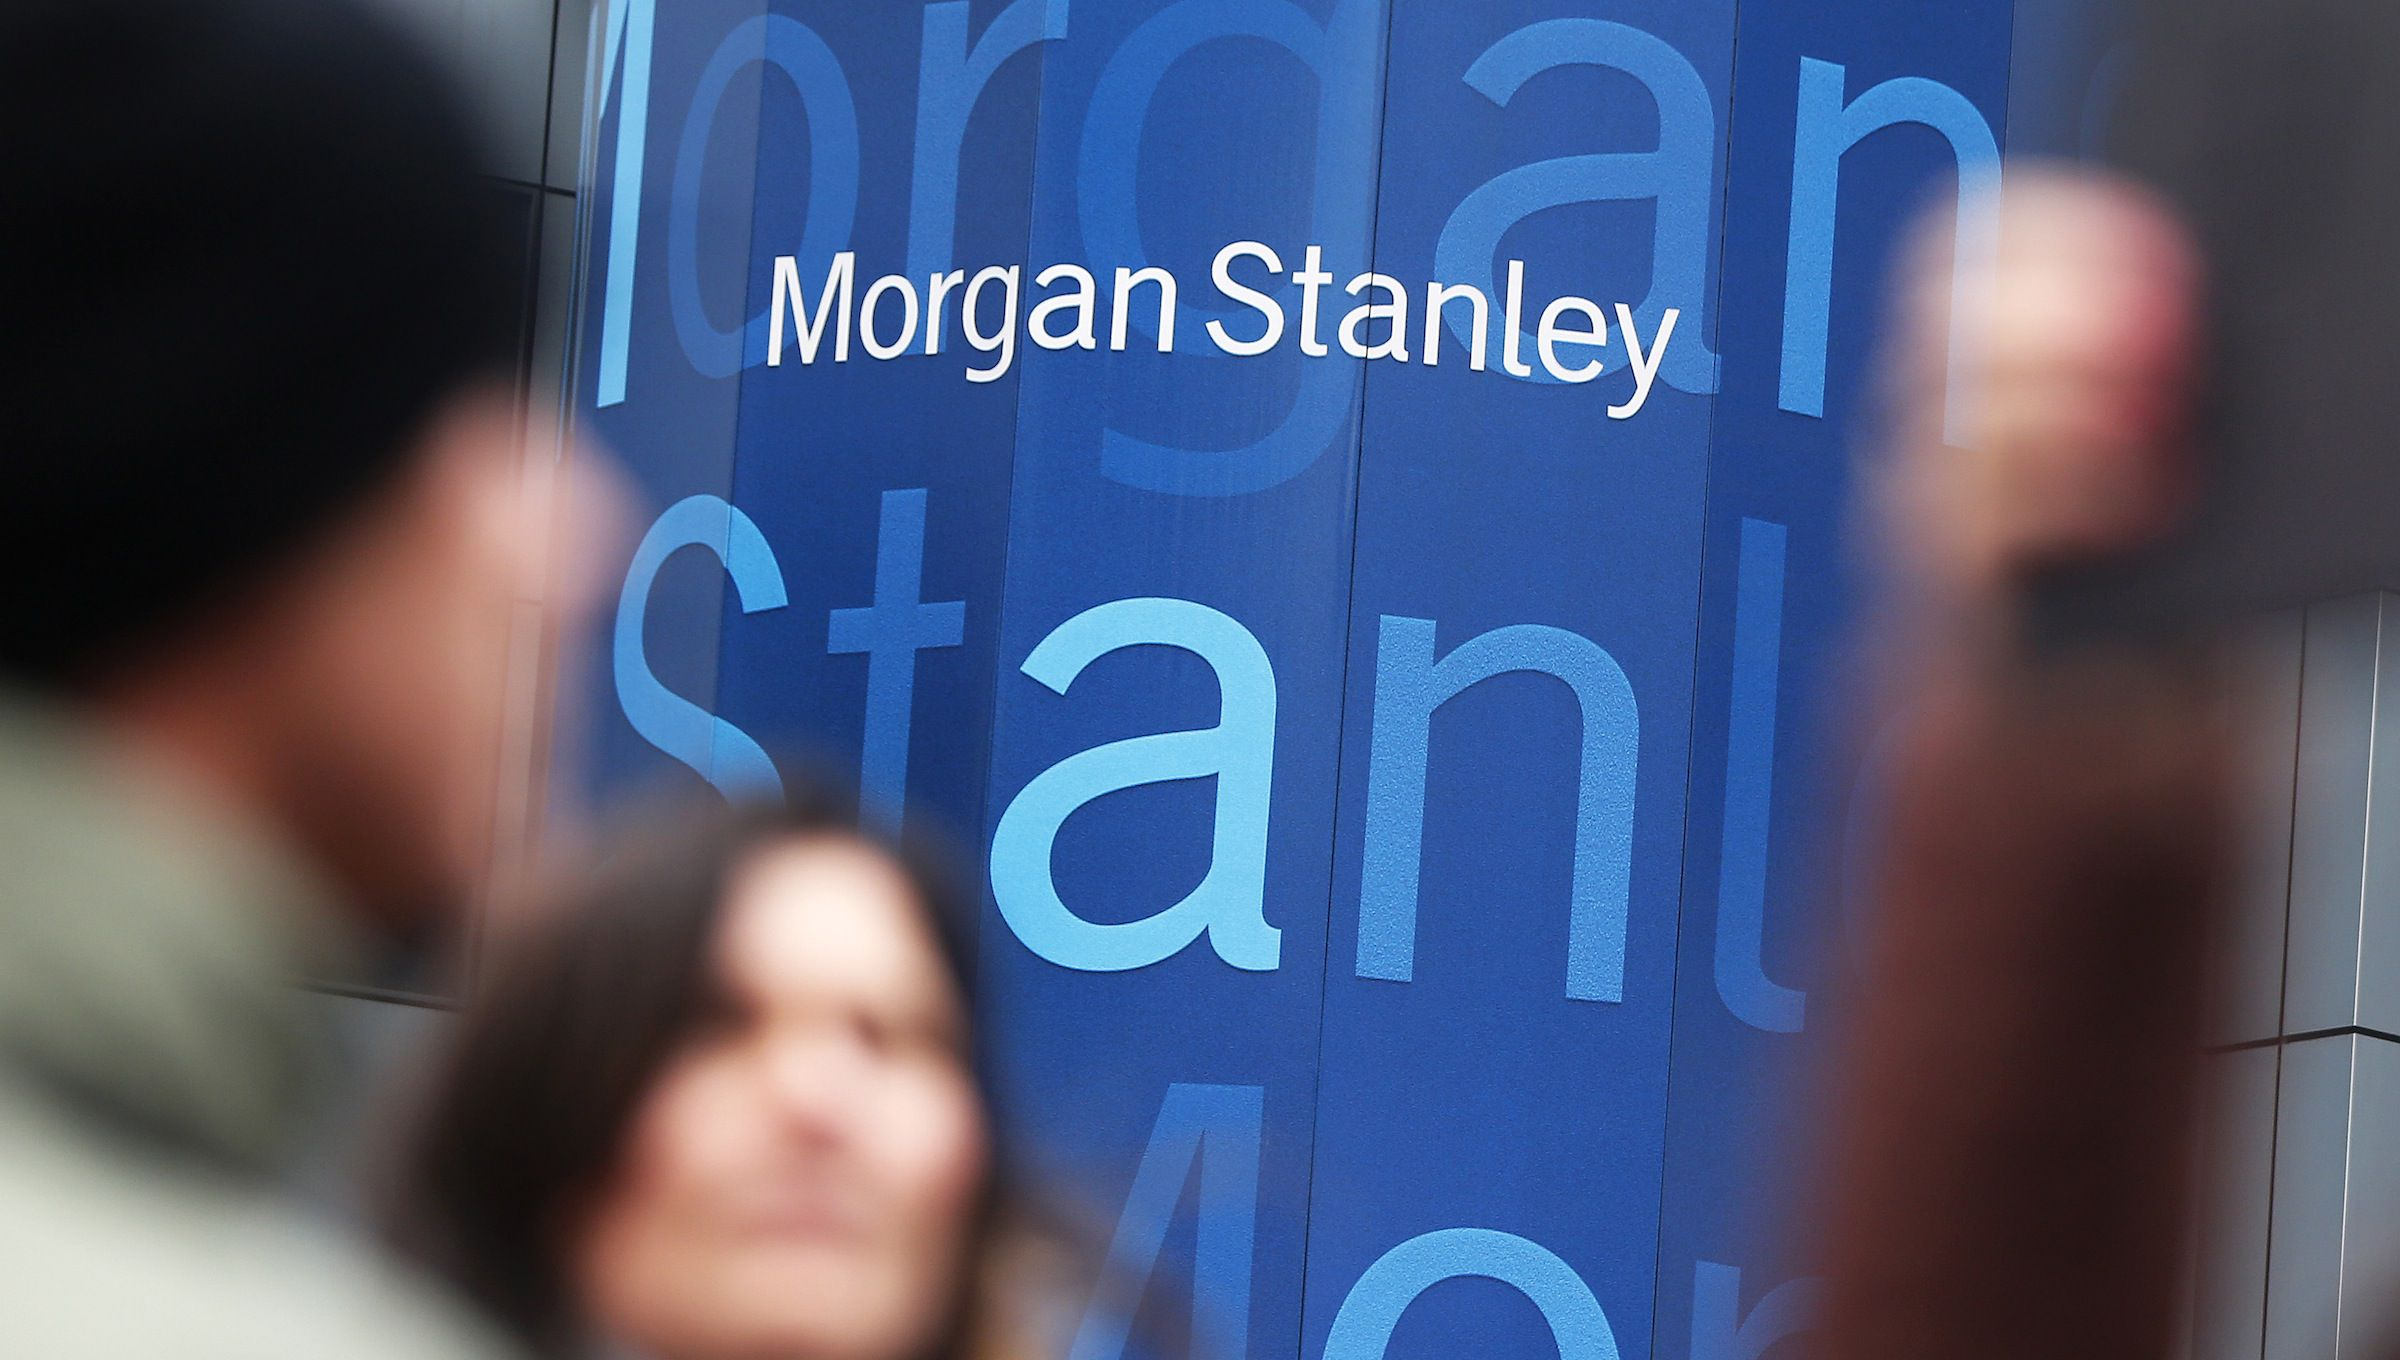 The headquarters of Morgan Stanley is seen in New York January 9, 2013. Morgan Stanley plans to cut 6 percent of its institutional securities unit staff starting this week, two people familiar with the matter said on Wednesday in the latest sign of a pullback on Wall Street as revenue from trading and dealmaking remains in the doldrums. Combined with related job cuts of support staff, Morgan Stanley's workforce reduction will amount to 1,600 people, said the sources, who were not authorized to speak publicly about the matter. REUTERS/Shannon Stapleton (UNITED STATES - Tags: BUSINESS EMPLOYMENT) - RTR3C8XN